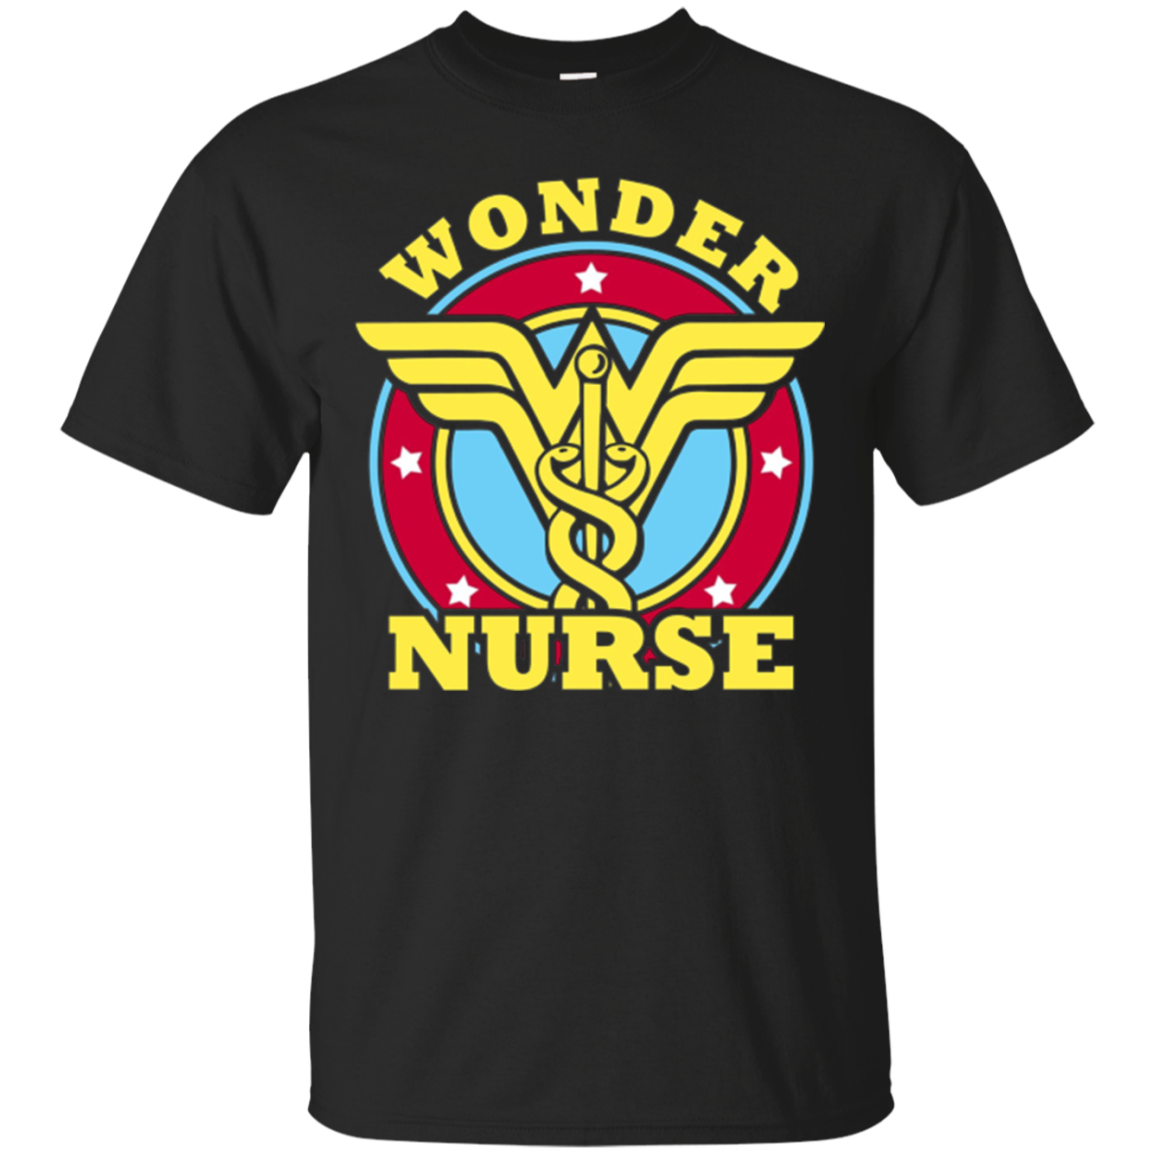 Wonder Nurse Nurses Medical Doctor T shirt